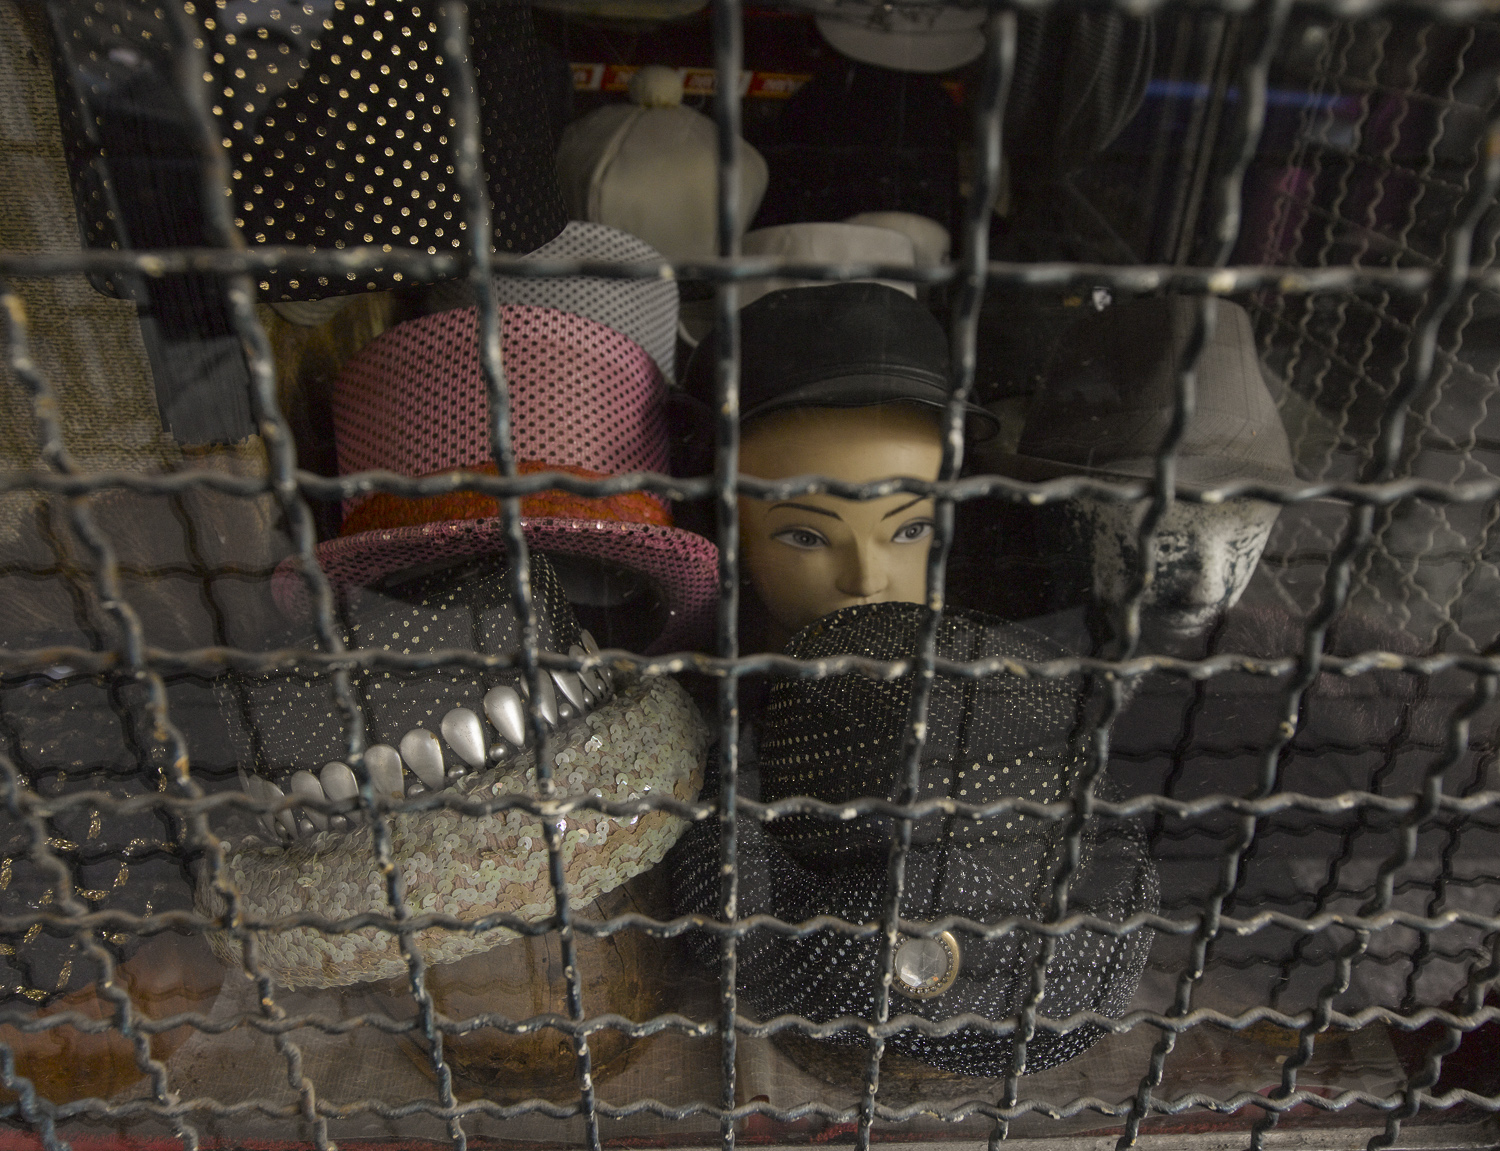 Shop window - Nachlat Binyamin, Tel Aviv, 2009